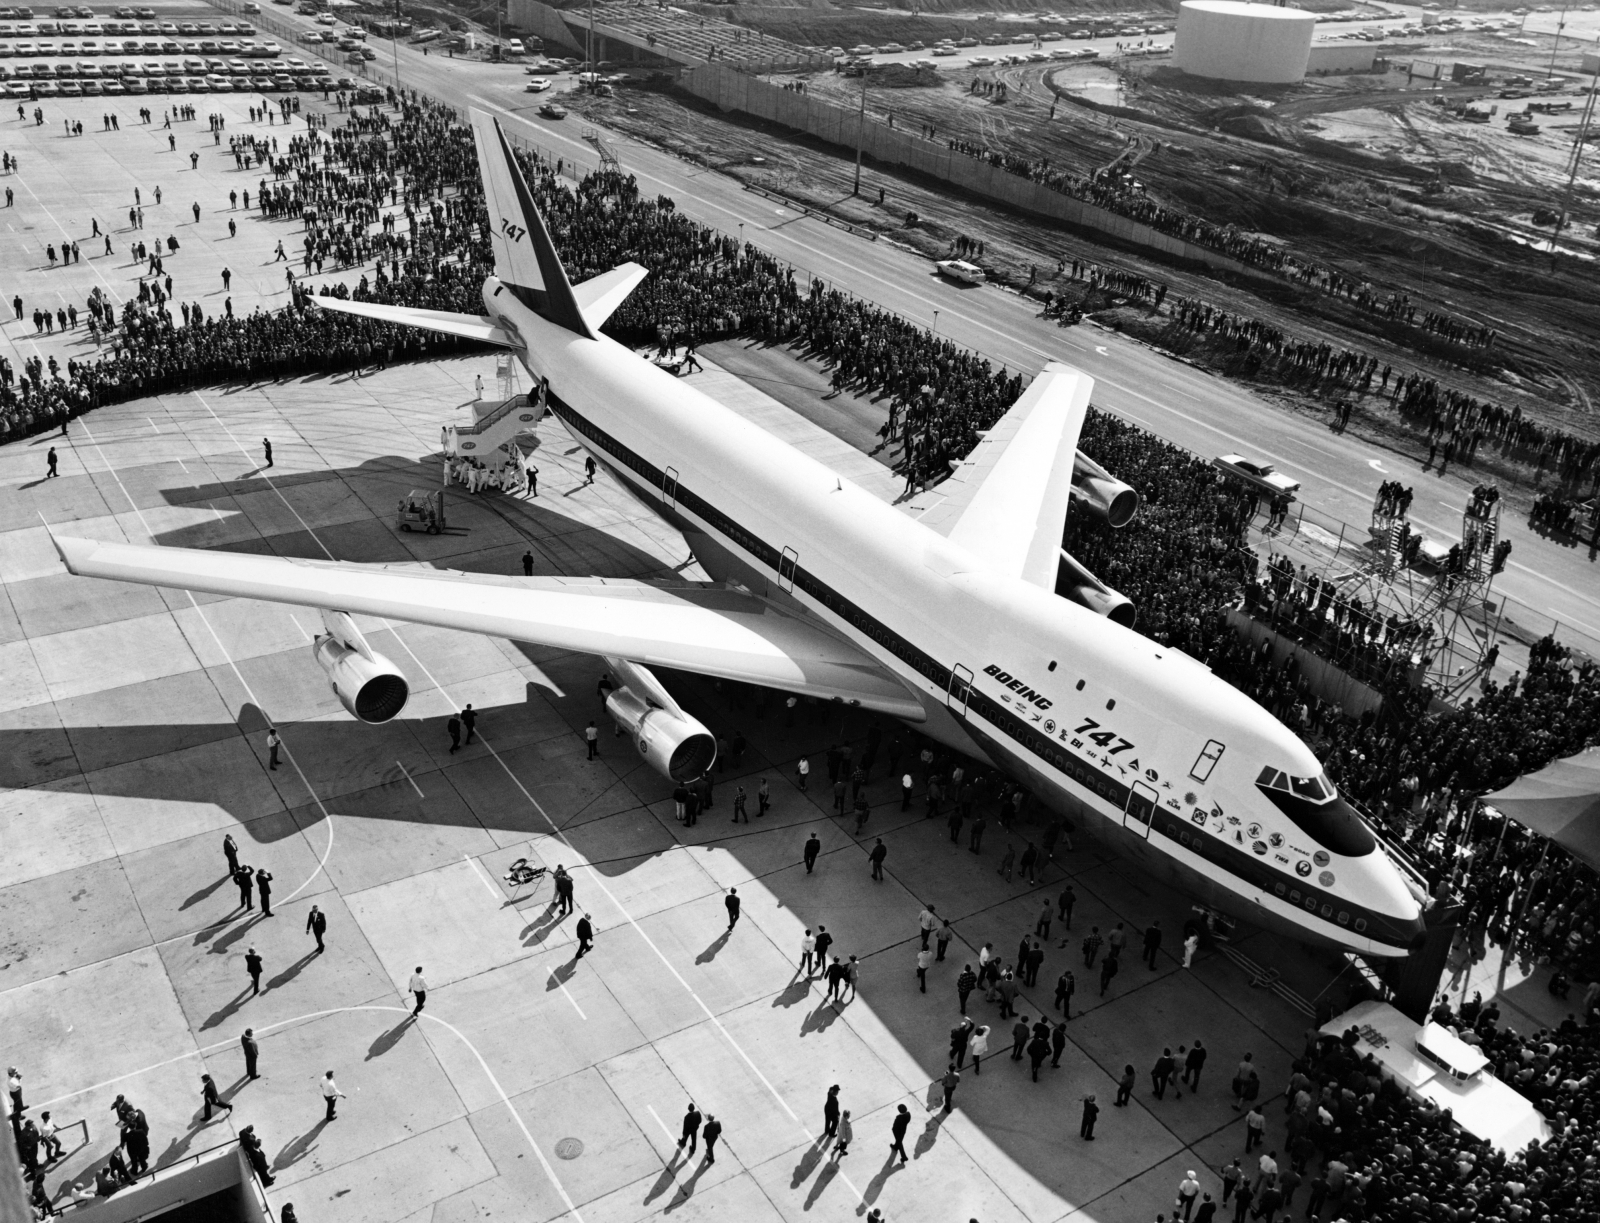 Boeing could end 747 jumbo jet production